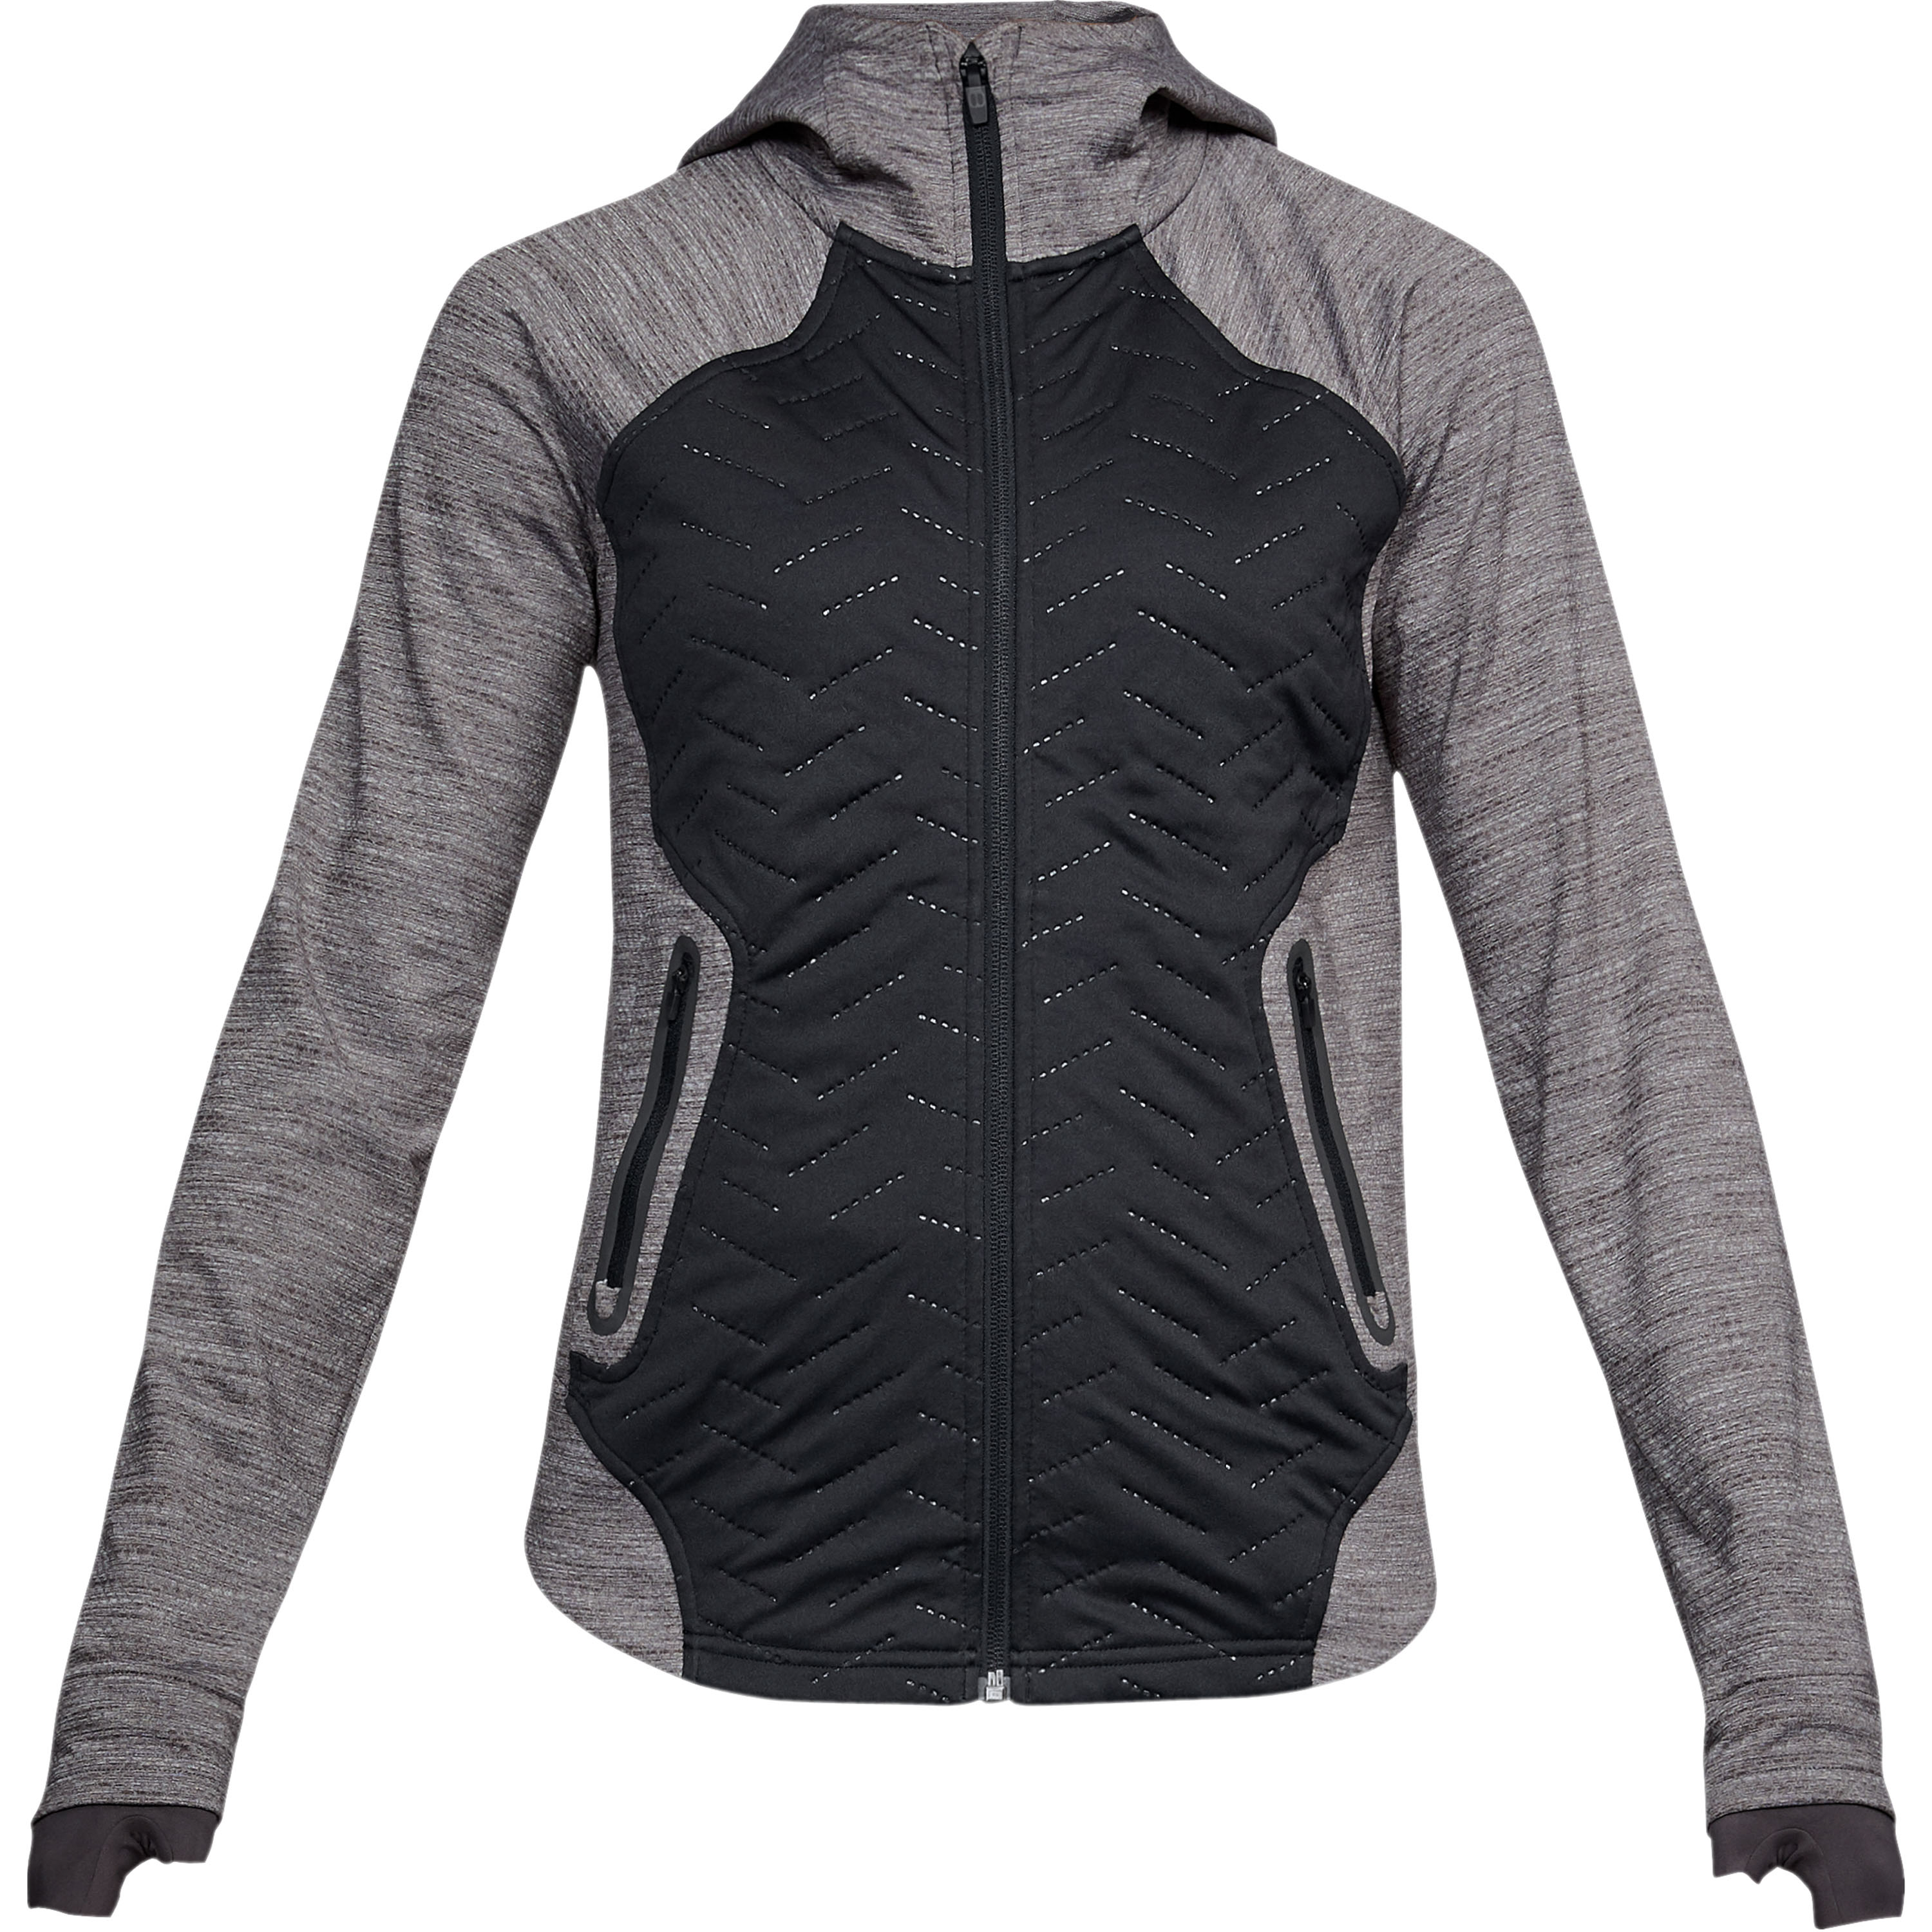 Giacca da donna Reactor 3G full zip Under Armour nera